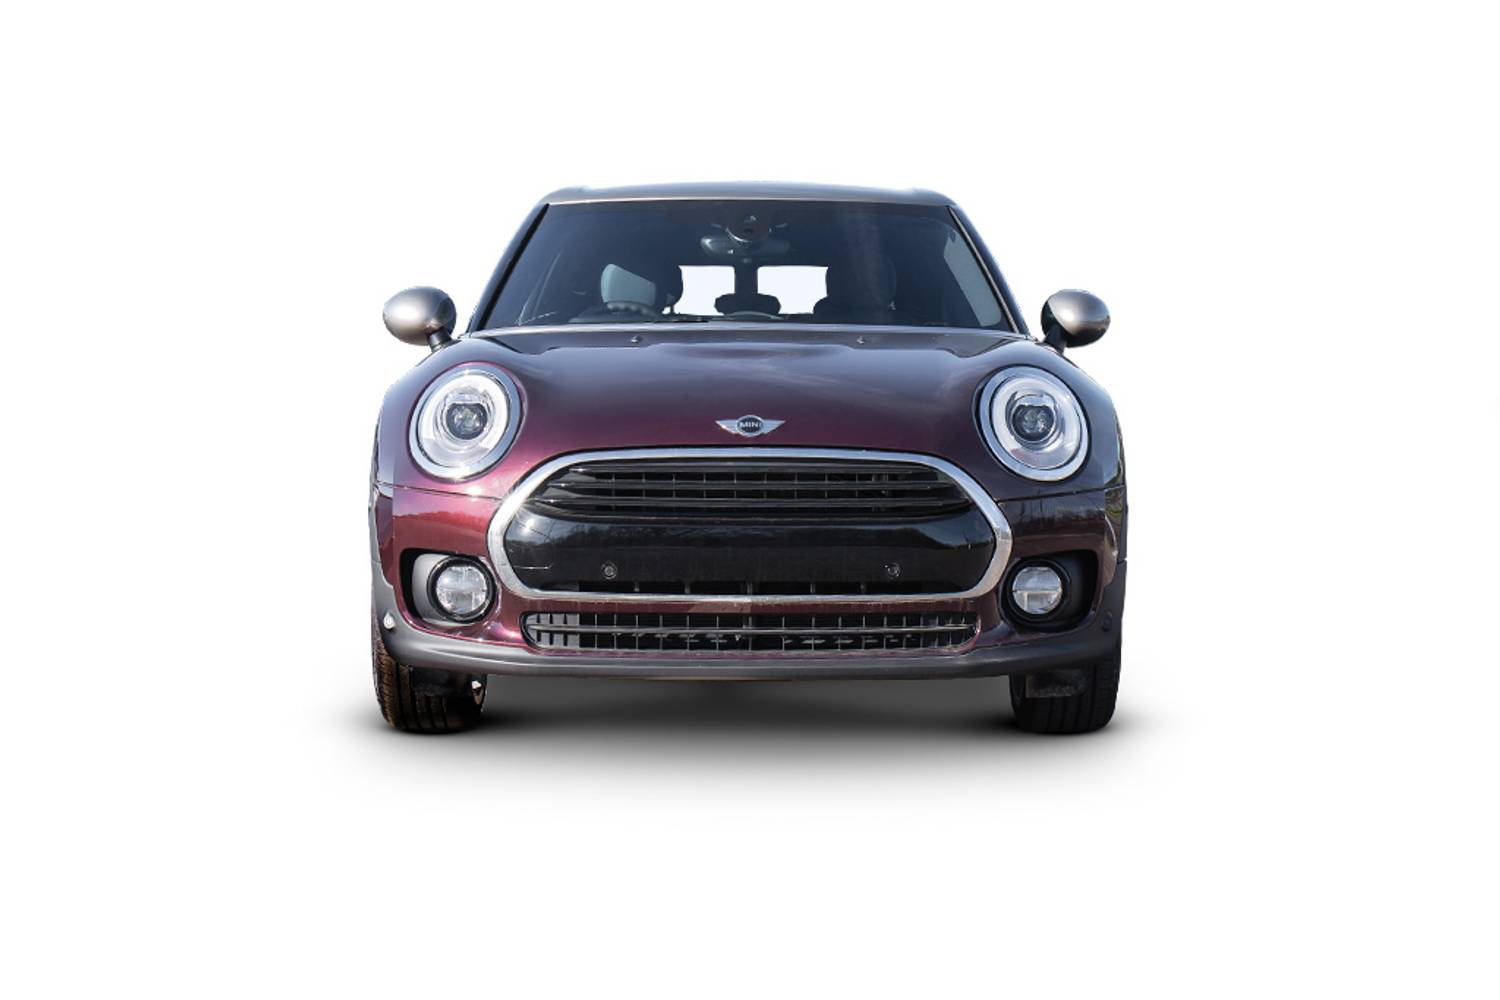 new mini clubman estate 1 5 cooper 6 door auto 2015 for sale. Black Bedroom Furniture Sets. Home Design Ideas